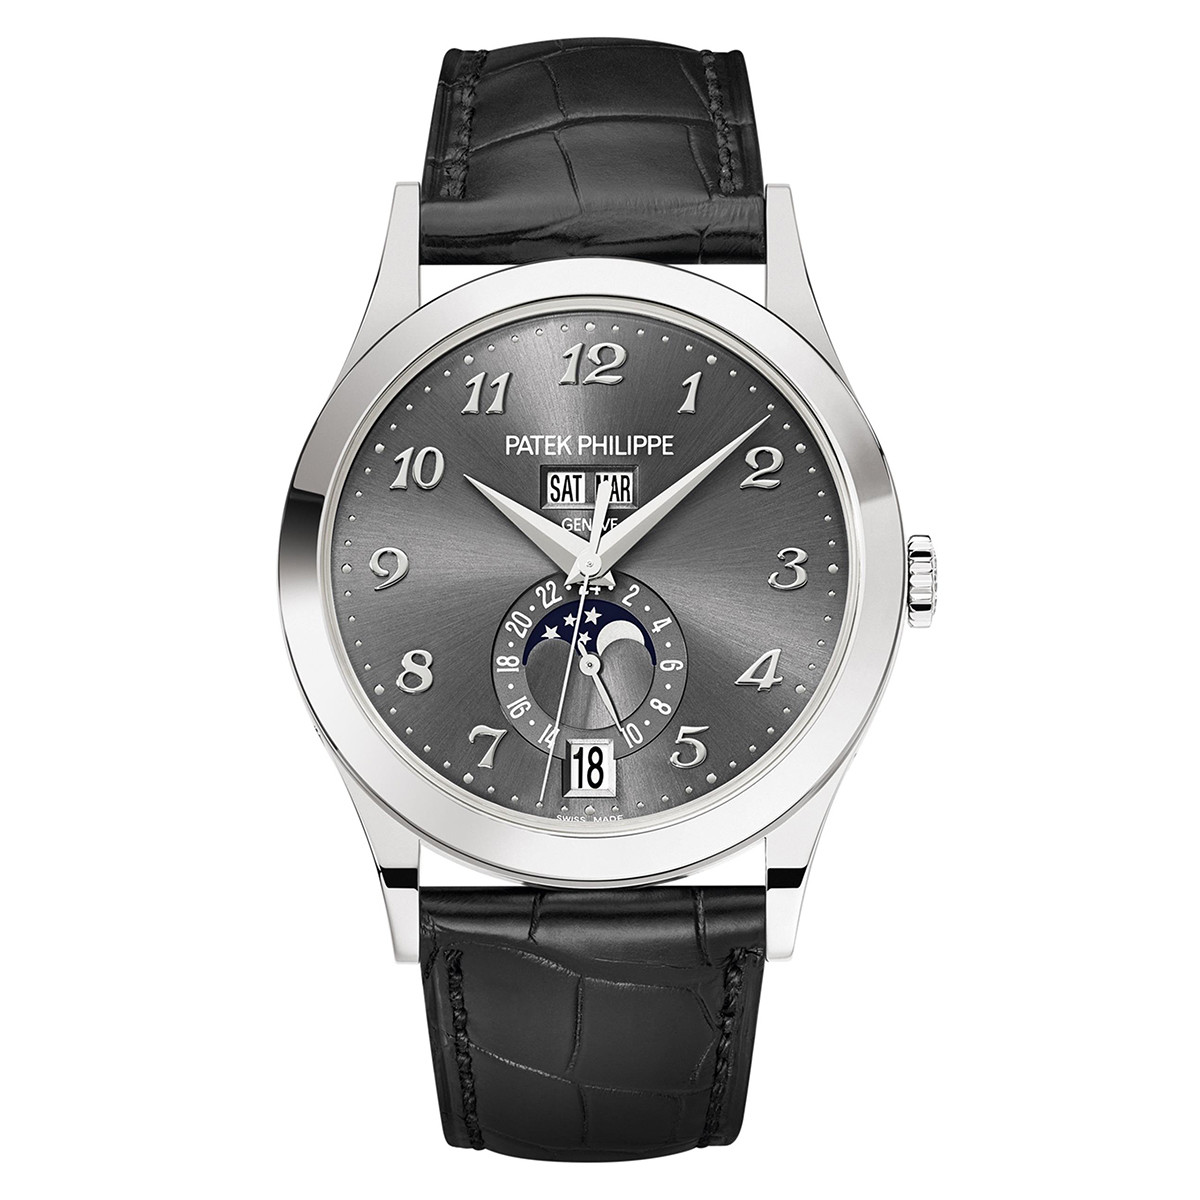 Annual Calendar White Gold (5396G-014)